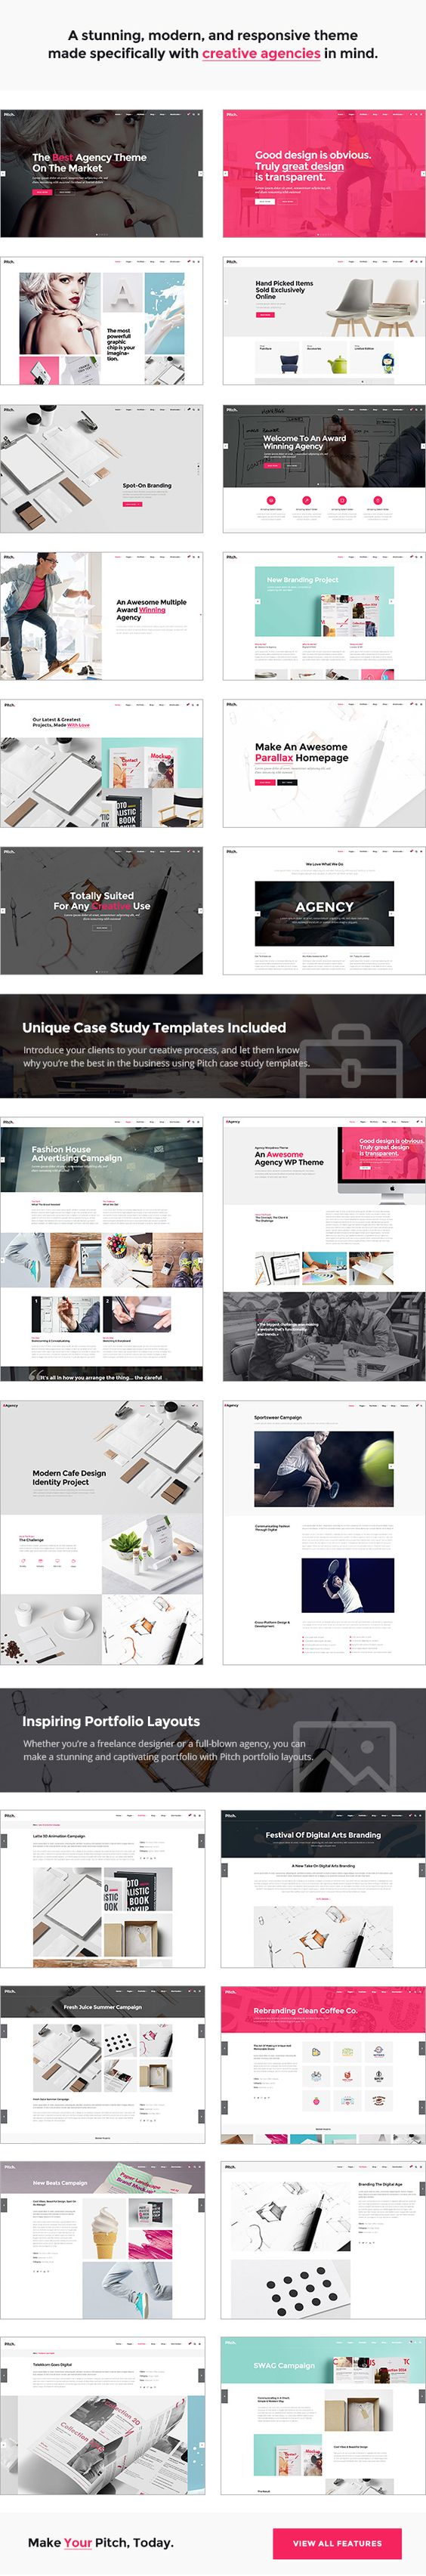 Theme Features   Powerful Admin Interface Highly Customizable  No coding knowledge required One-Click Demo Content Import Select Core Plugin with custom post types Full Screen Select Slider with...